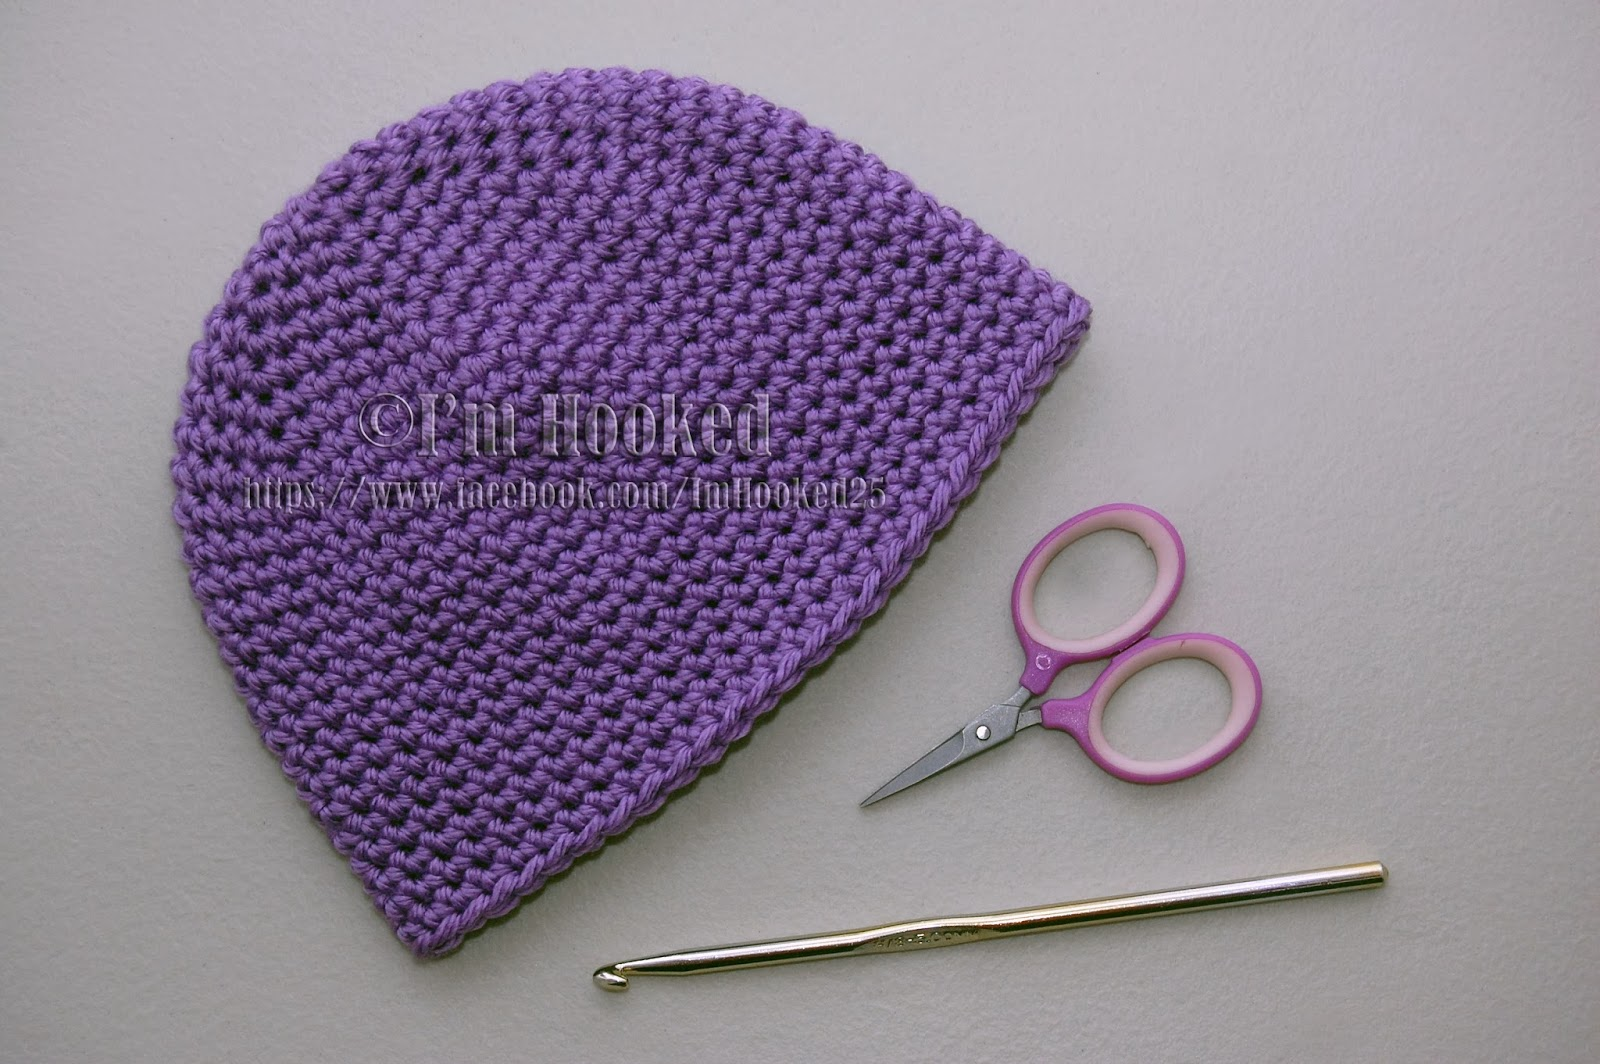 Crochet Treasures: Basic Beanie (Single Crochet)